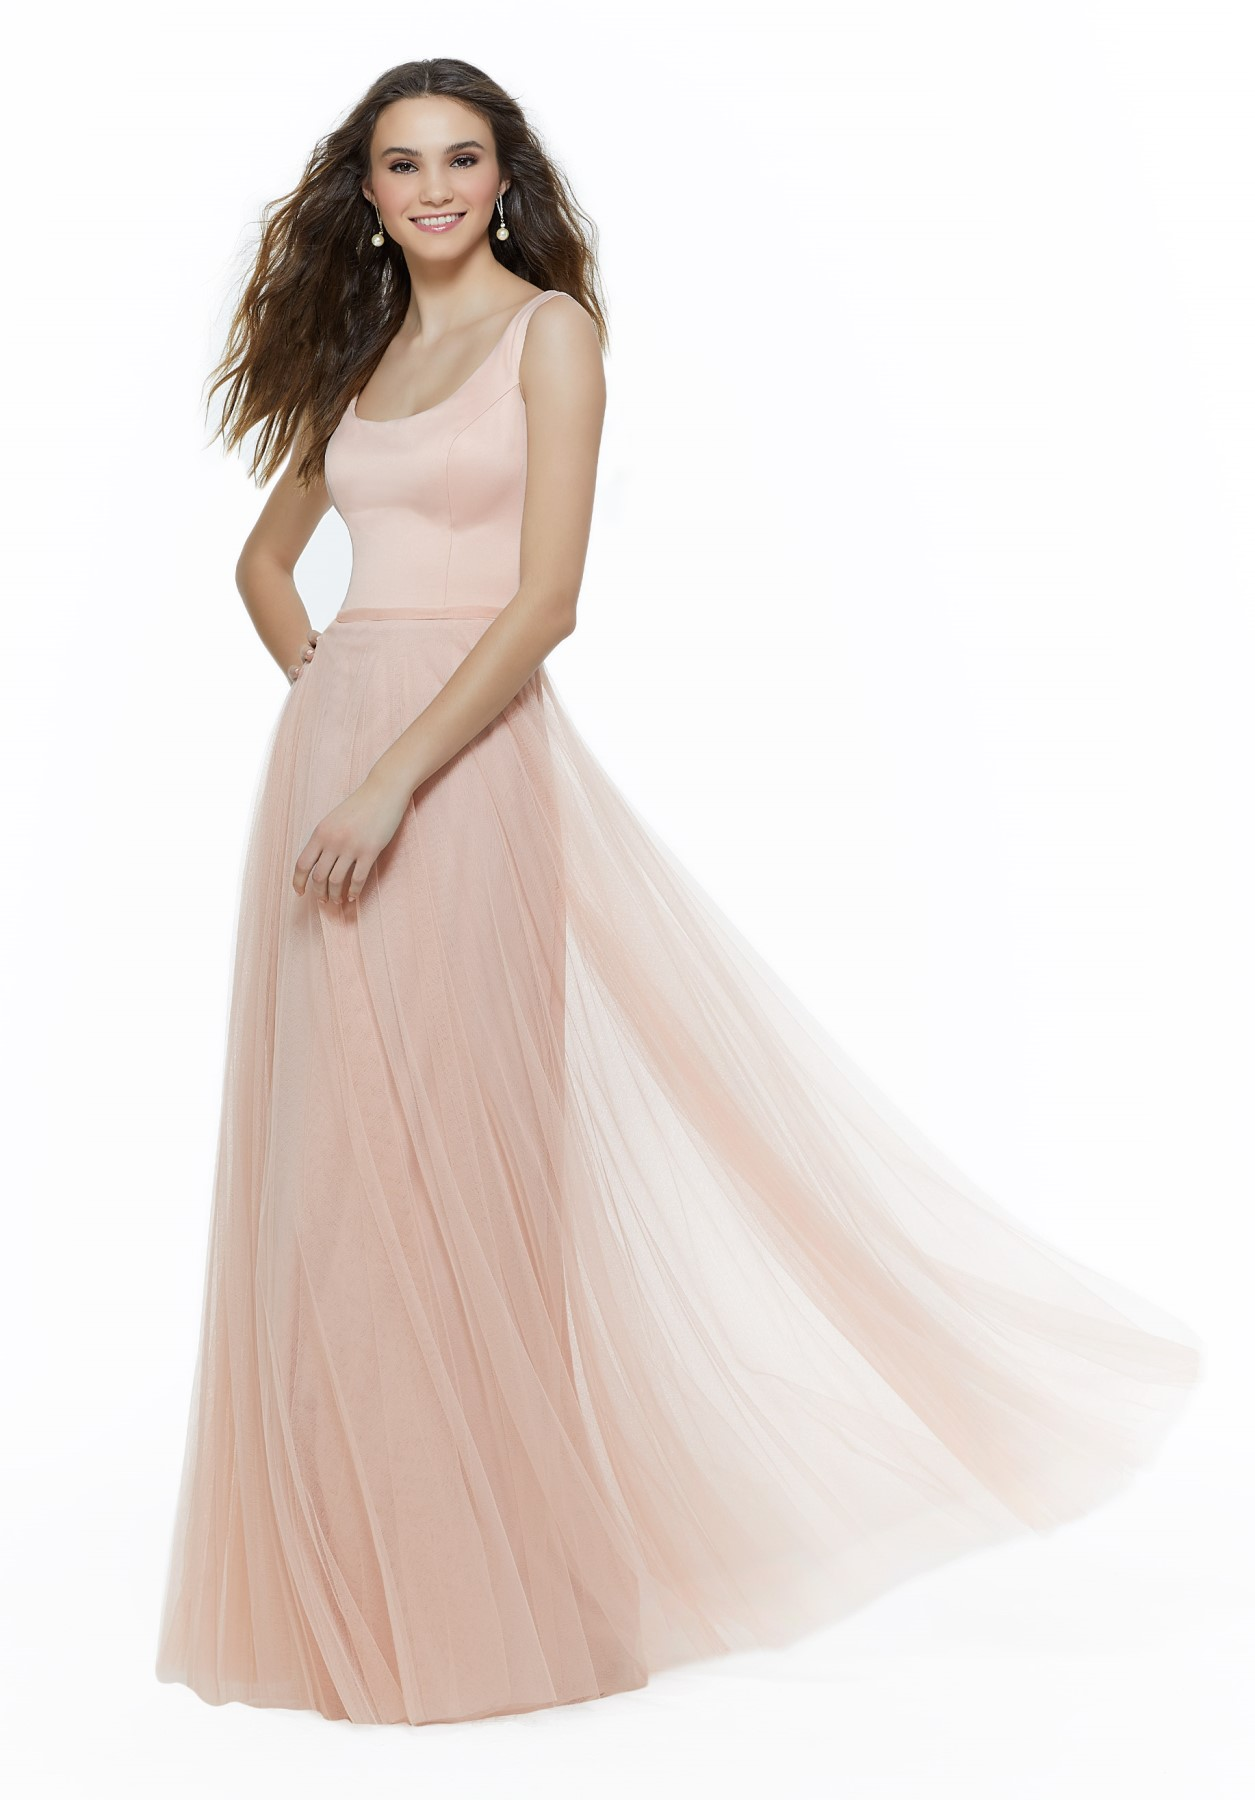 Mori Lee BRIDESMAIDS FALL 2019 Collection: 21641 - Classic Satin and English Net Bridesmaid Dress with Scoop Neck